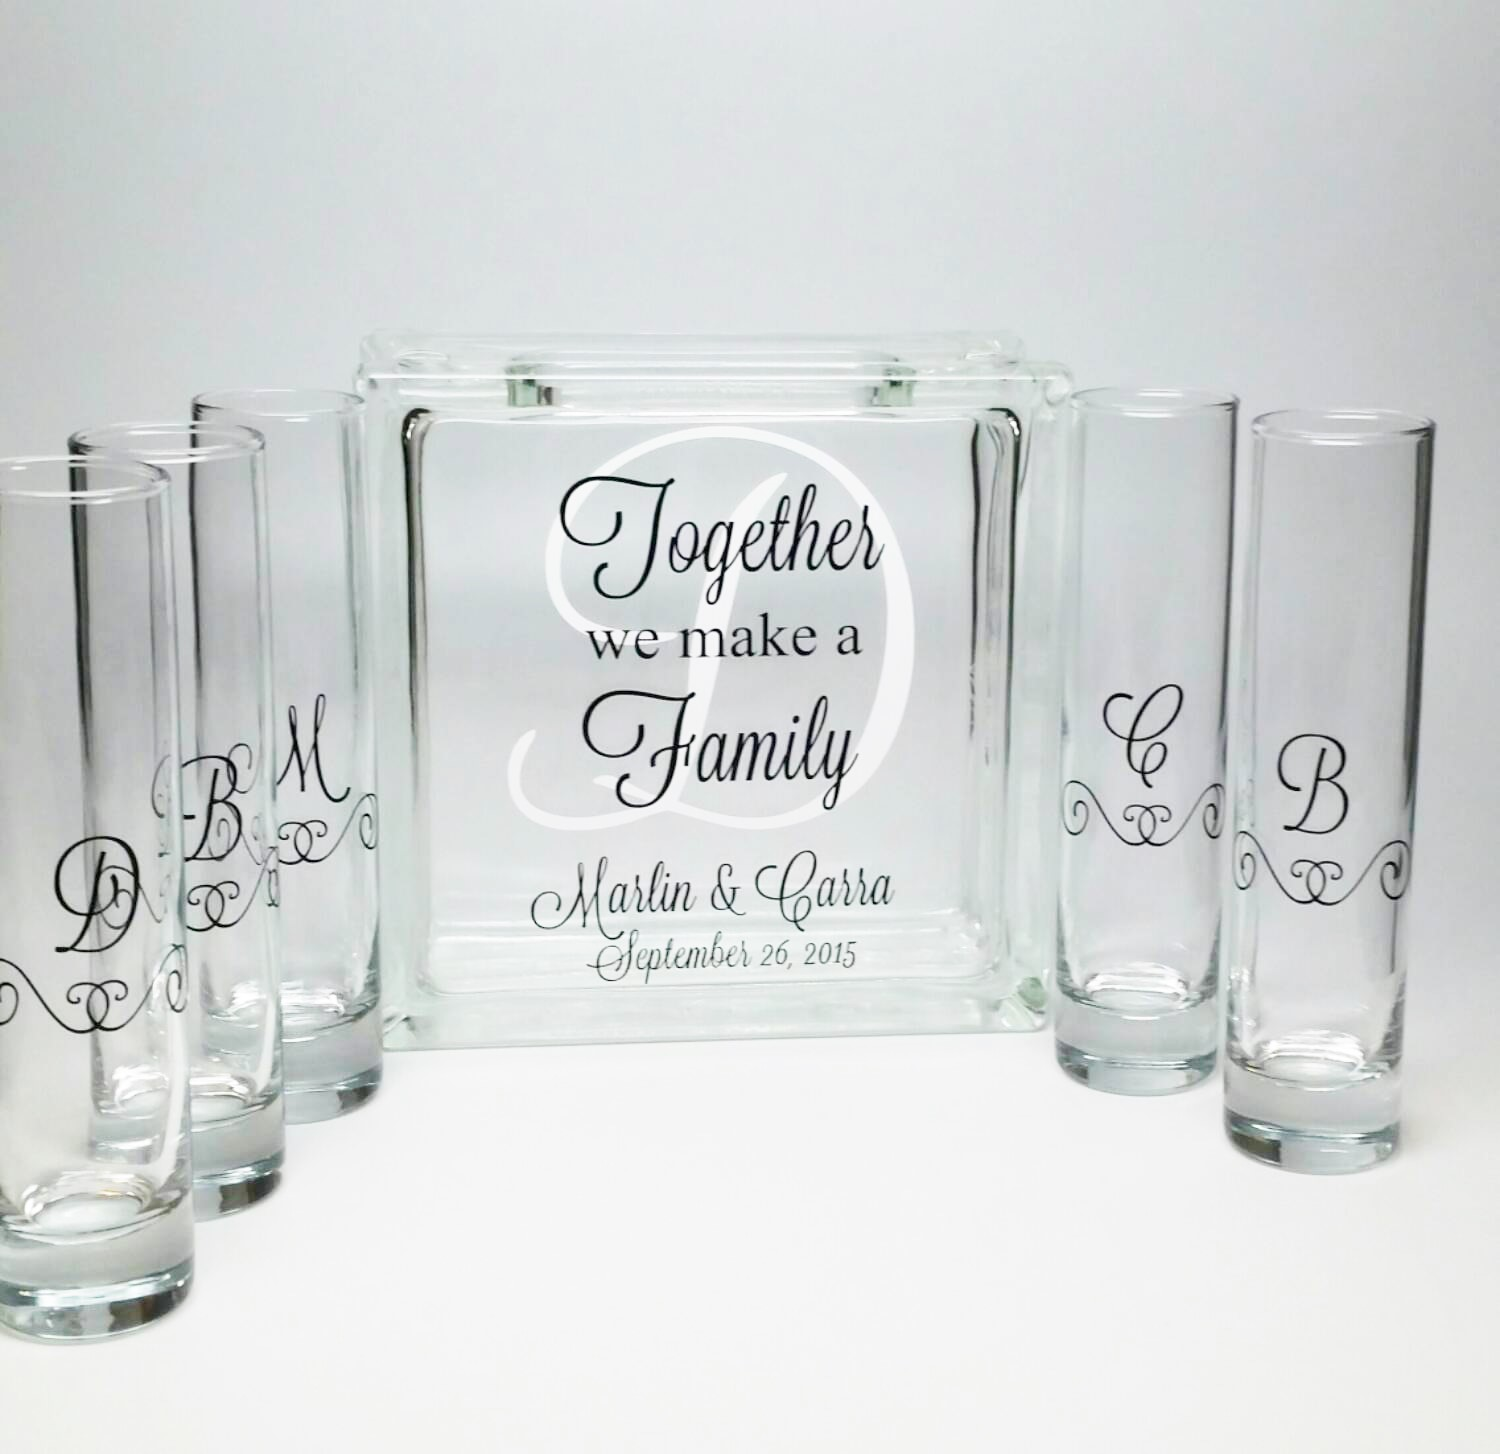 Blended family unity sand ceremony set with monogram the dream blended family unity sand ceremony set together we make a family with monogram reviewsmspy